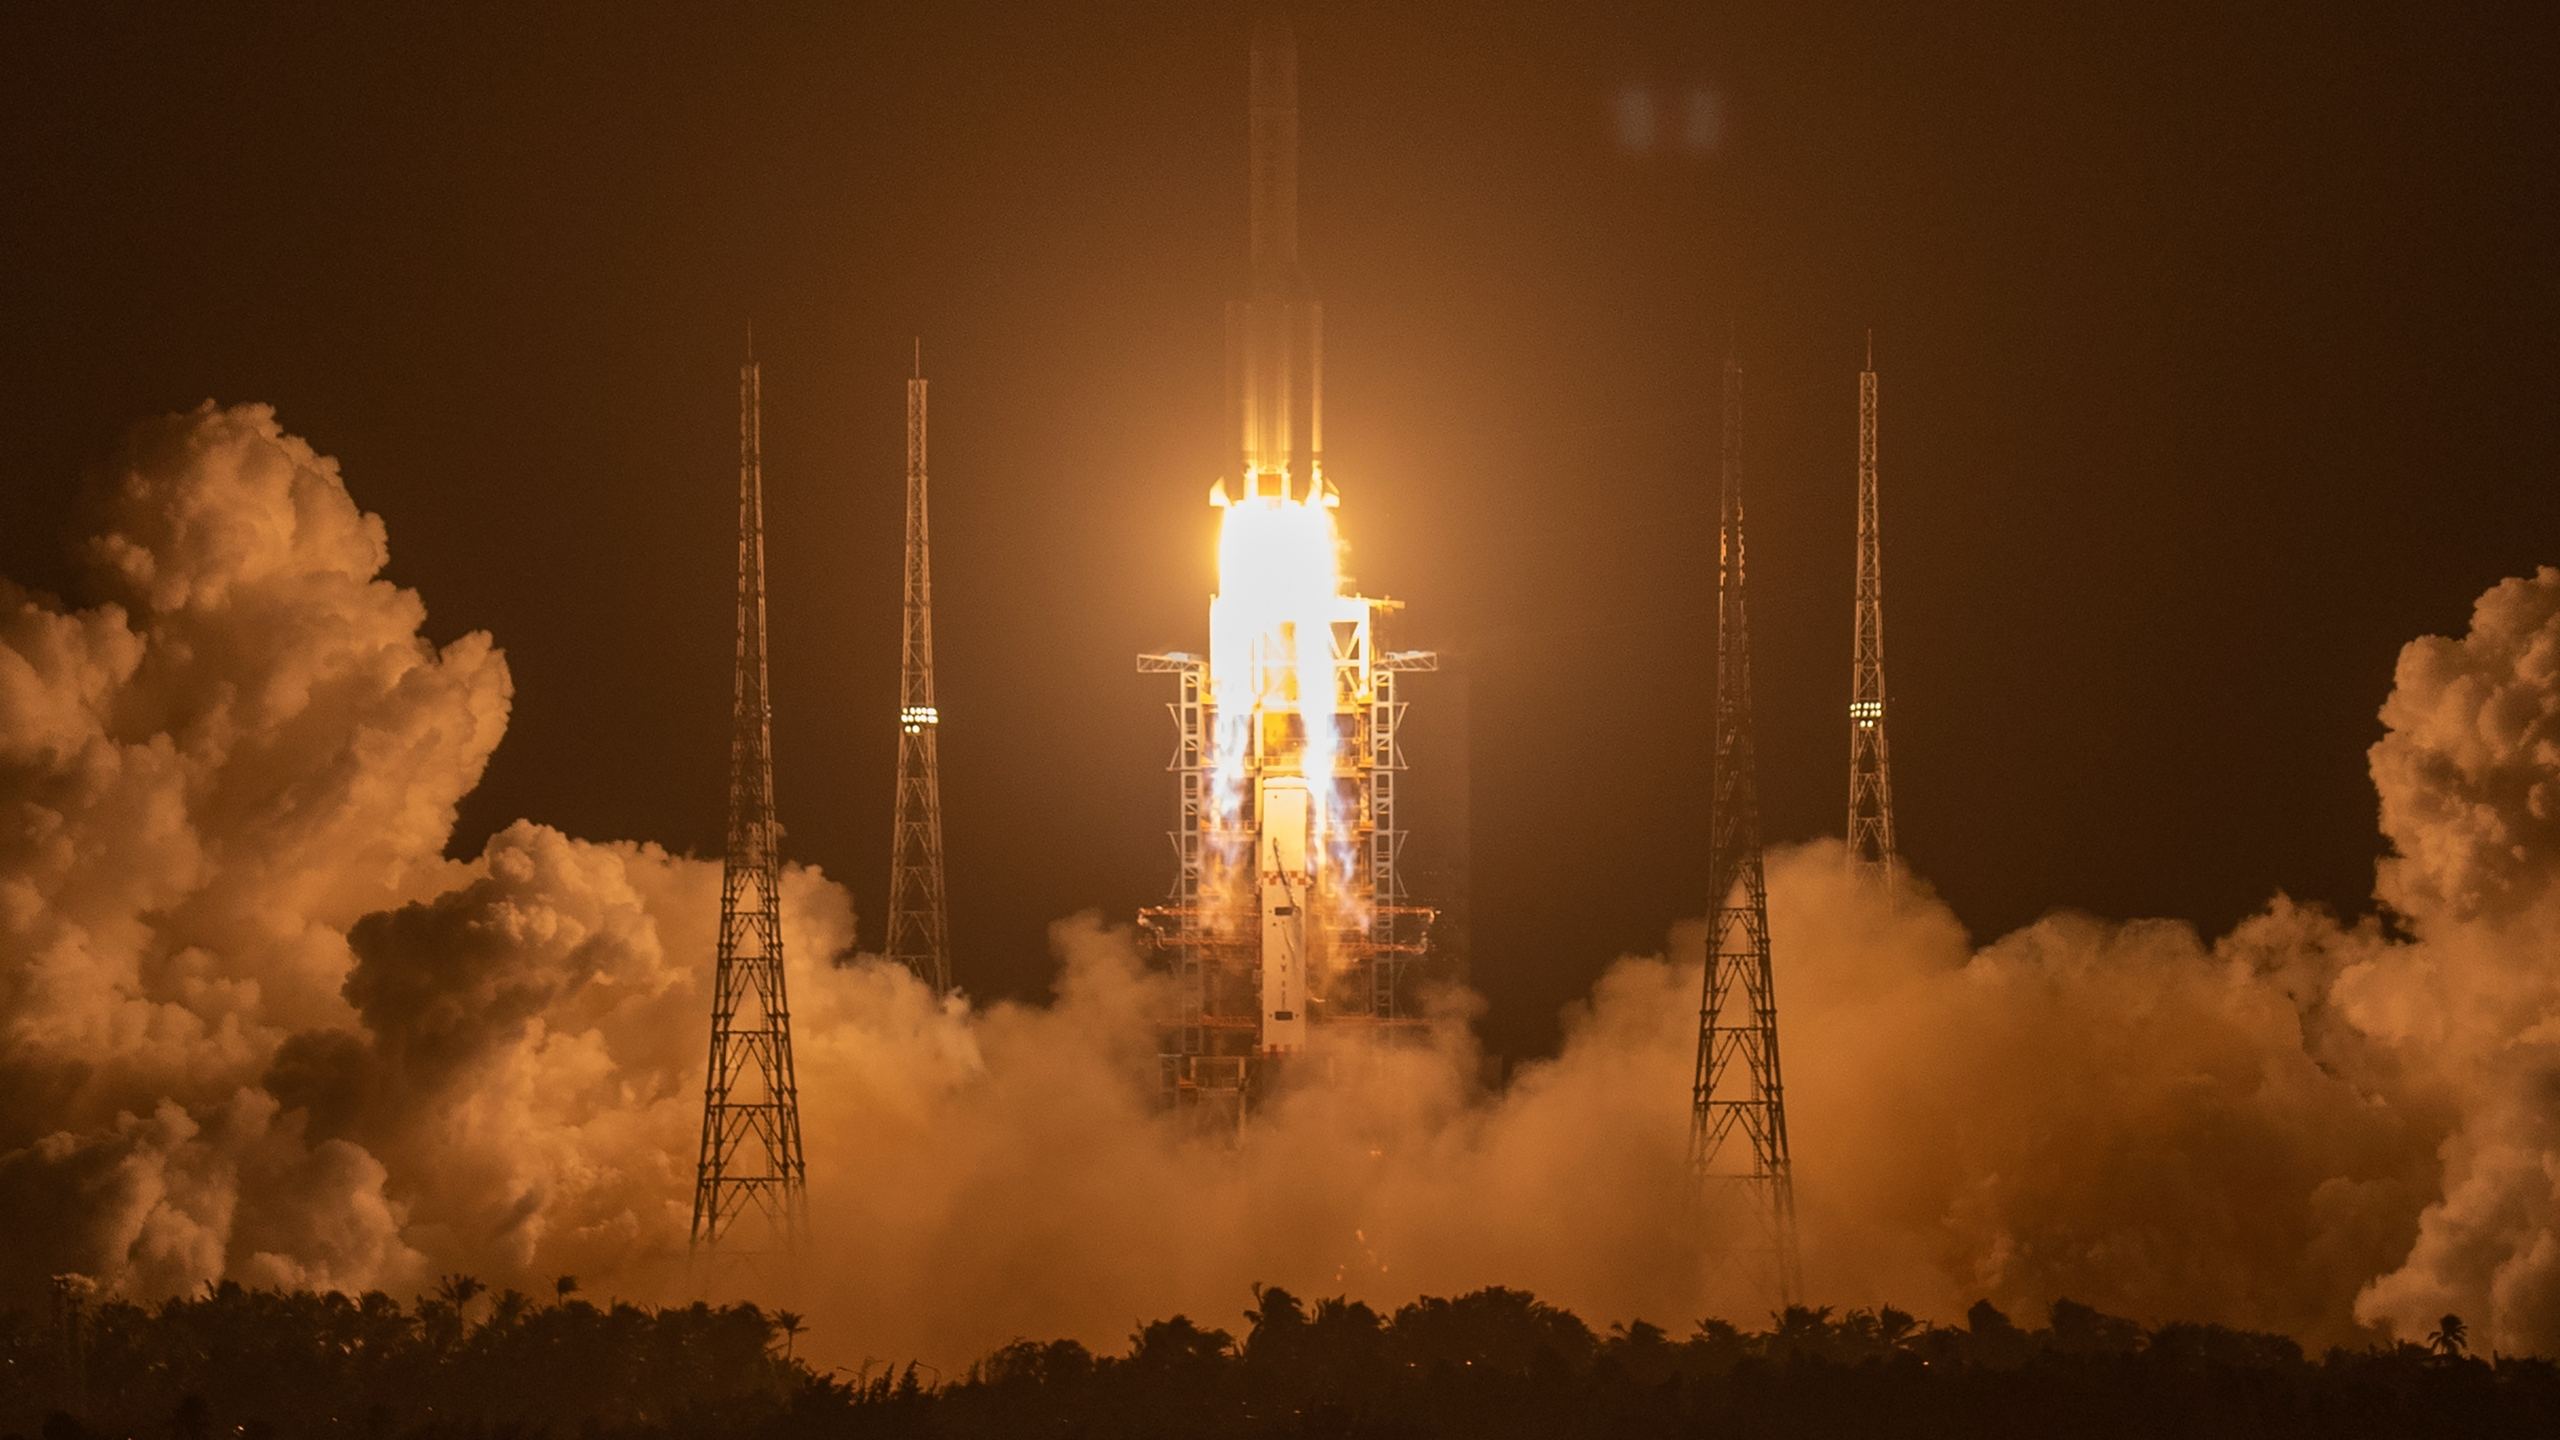 A Long March-5 rocket carrying the Chang'e 5 lunar mission lifts off at the Wenchang Space Launch Center in Wenchang in southern China's Hainan Province on Nov. 24, 2020. (AP Photo/Mark Schiefelbein)